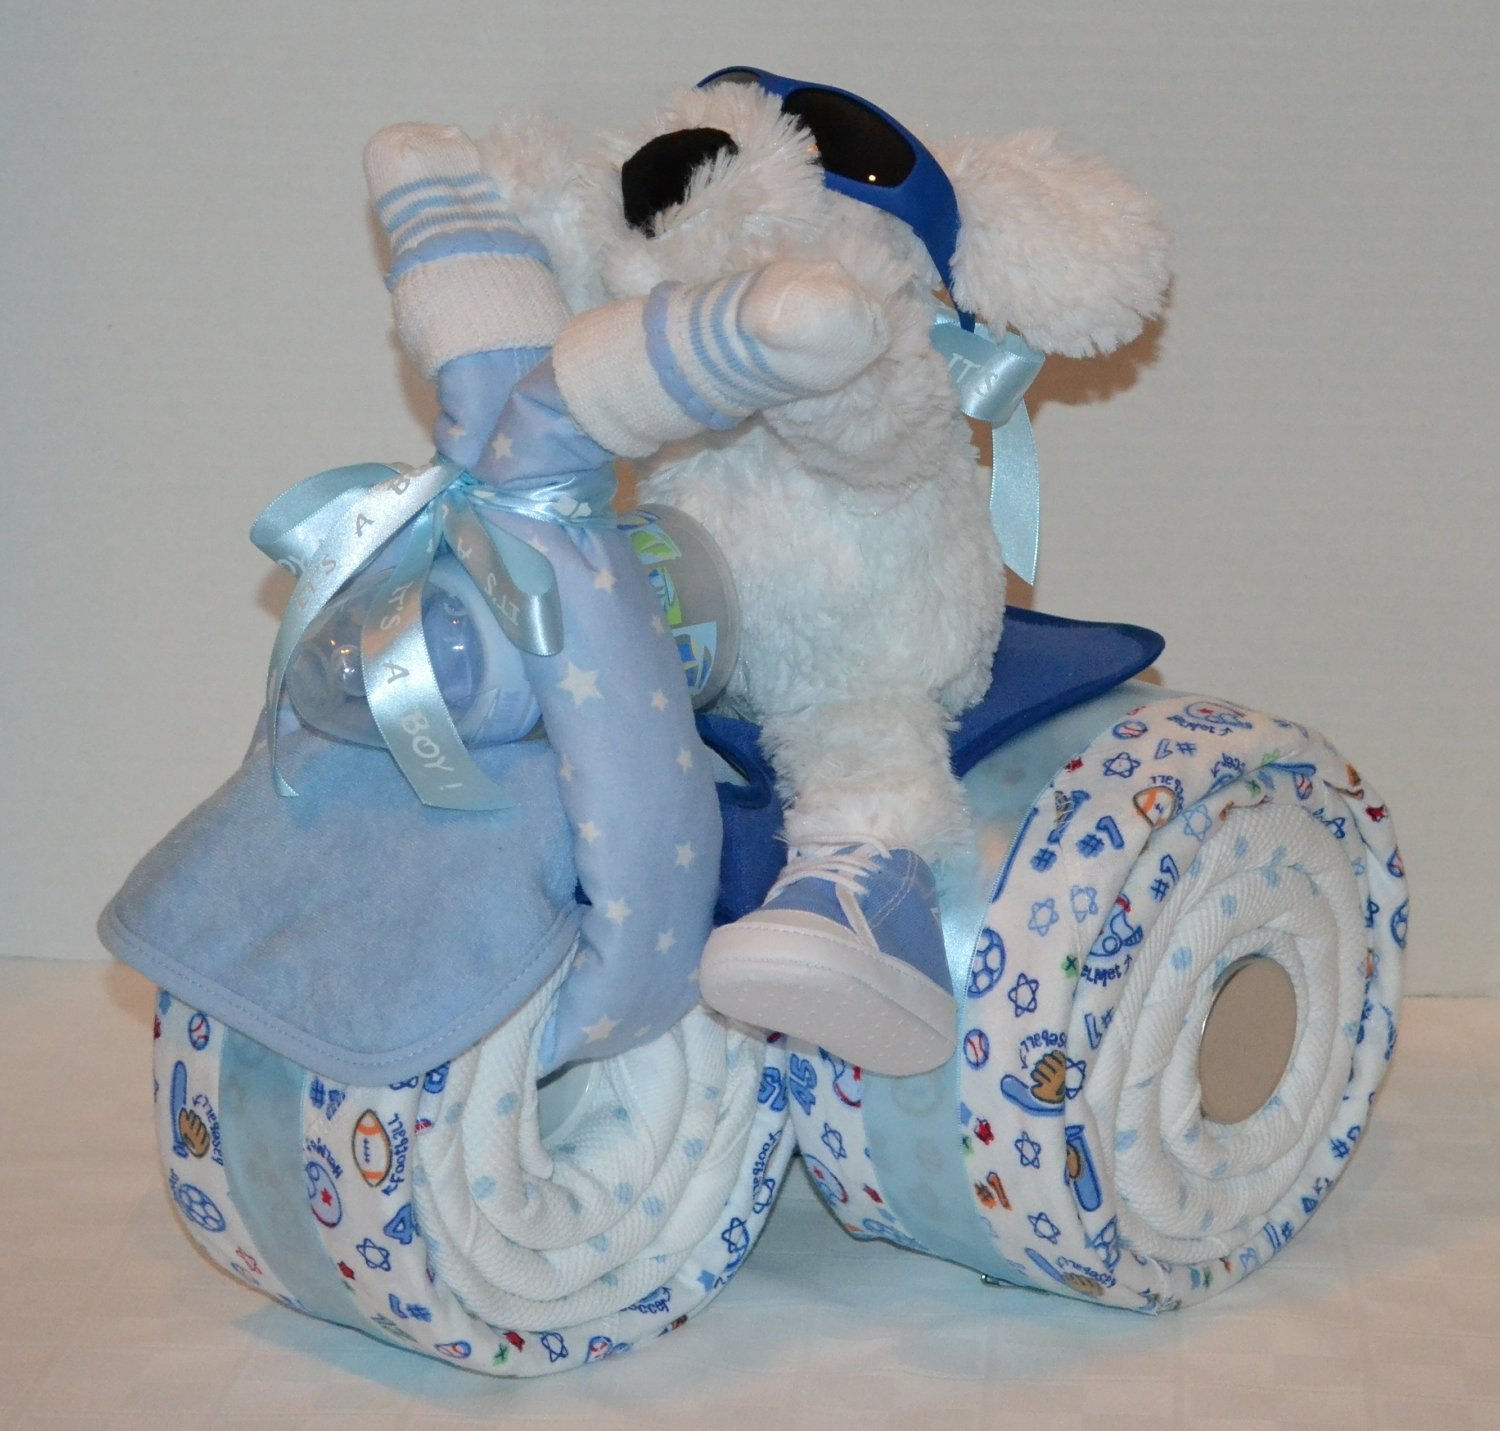 10 Stunning Baby Gift Ideas For Boys blue towel baby shower gift ideas for boys baby shower ideas gallery 2020